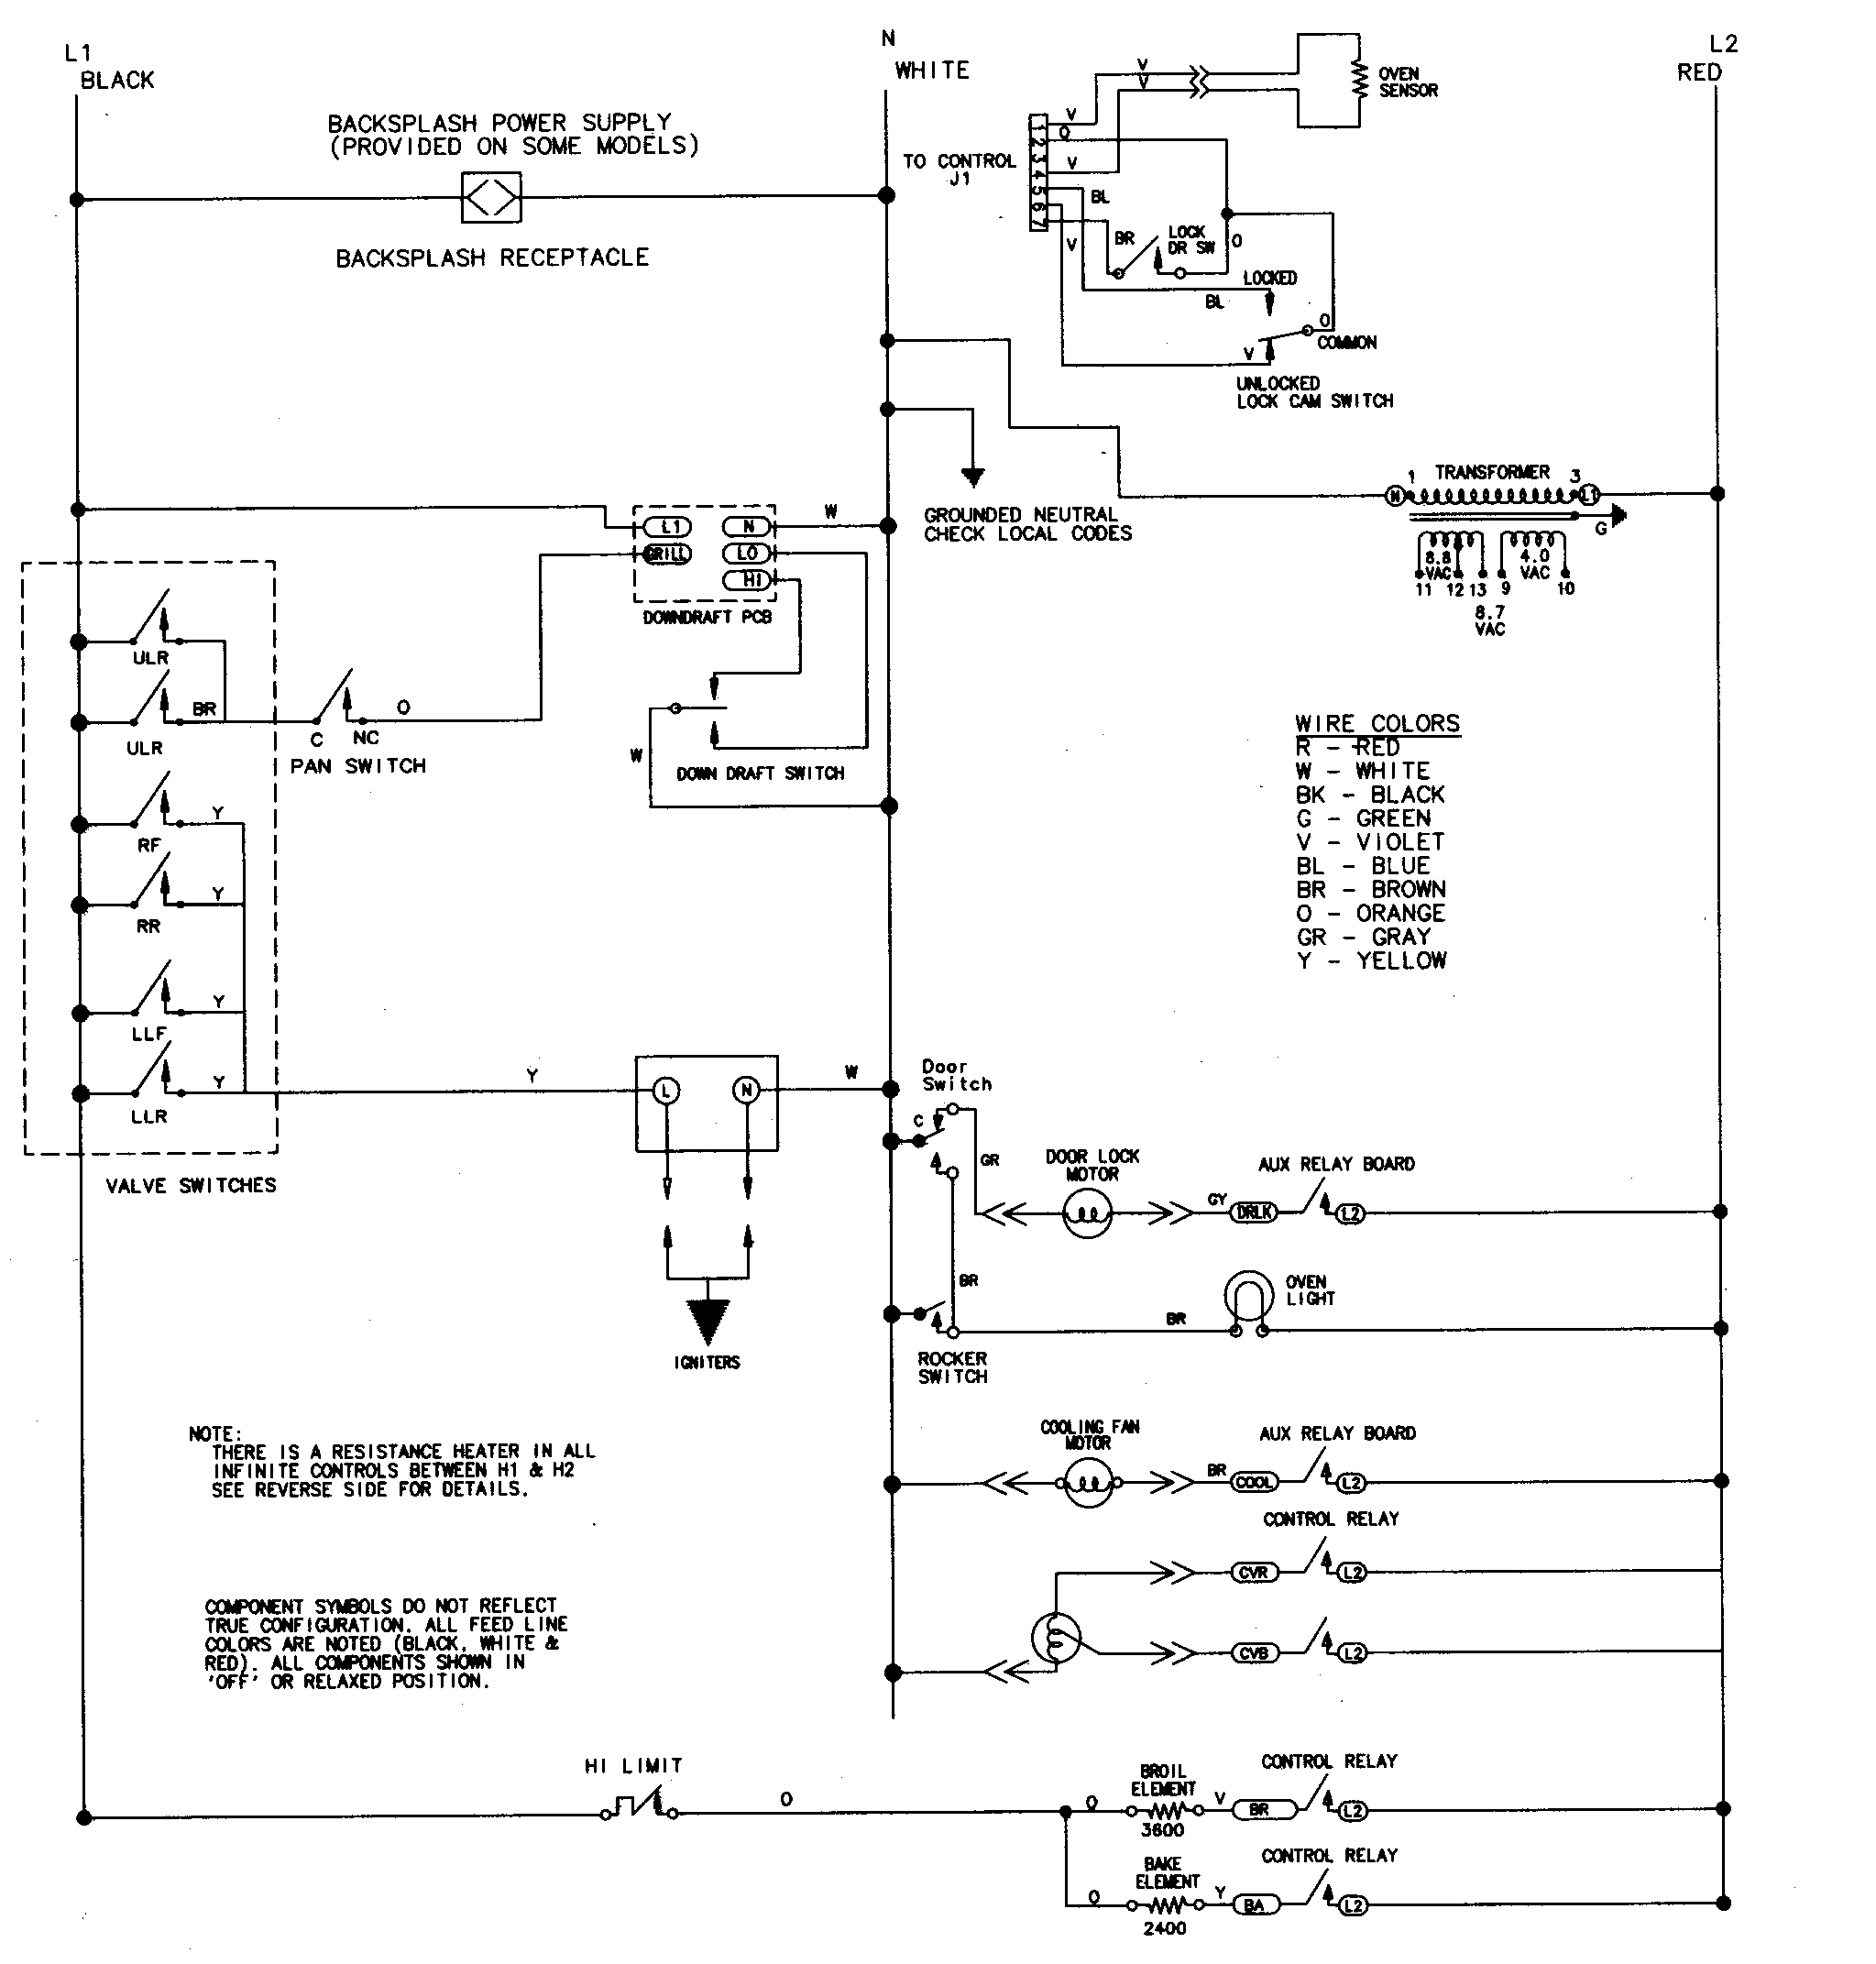 wiring information parts jenn air wiring diagram whirlpool range wiring diagram \u2022 wiring wiring diagram for electric fireplace at webbmarketing.co